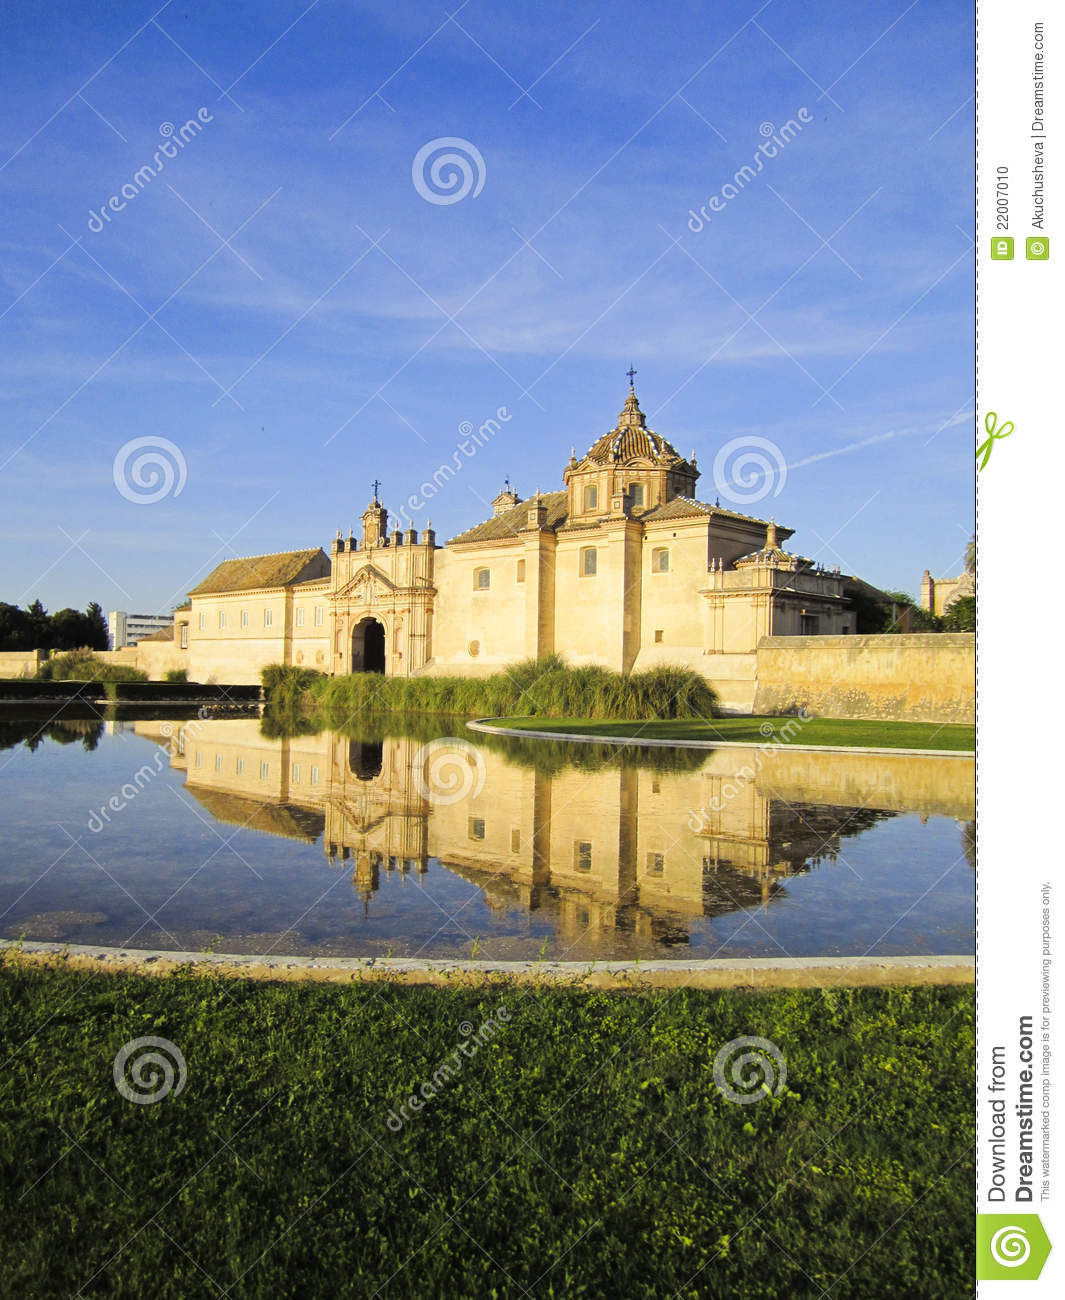 Monasterio de la cartuja sevilla stock photo image for La cartuja de sevilla